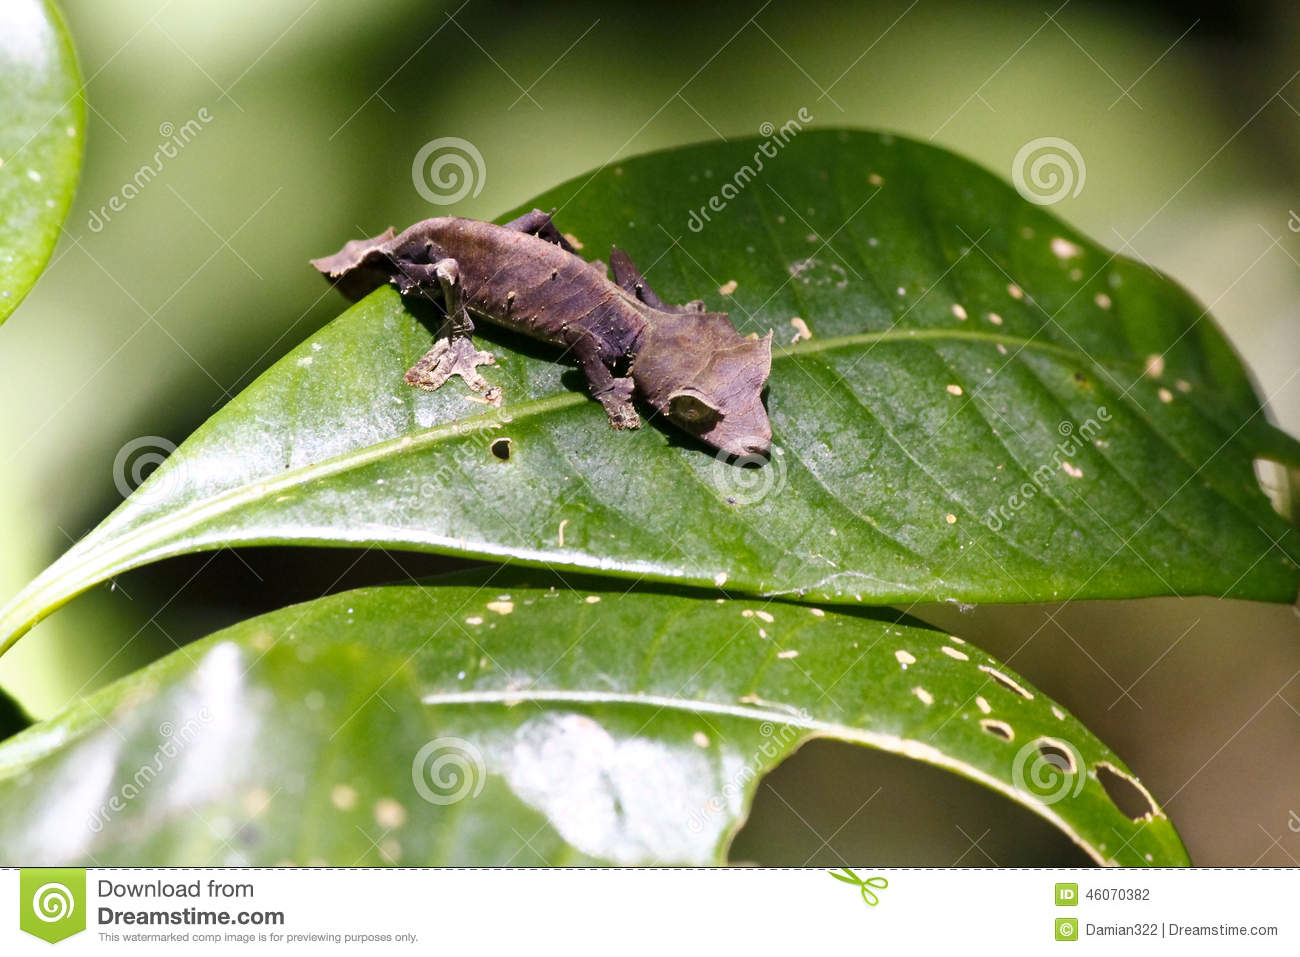 Satanic Leaf-tailed Gecko clipart #5, Download drawings